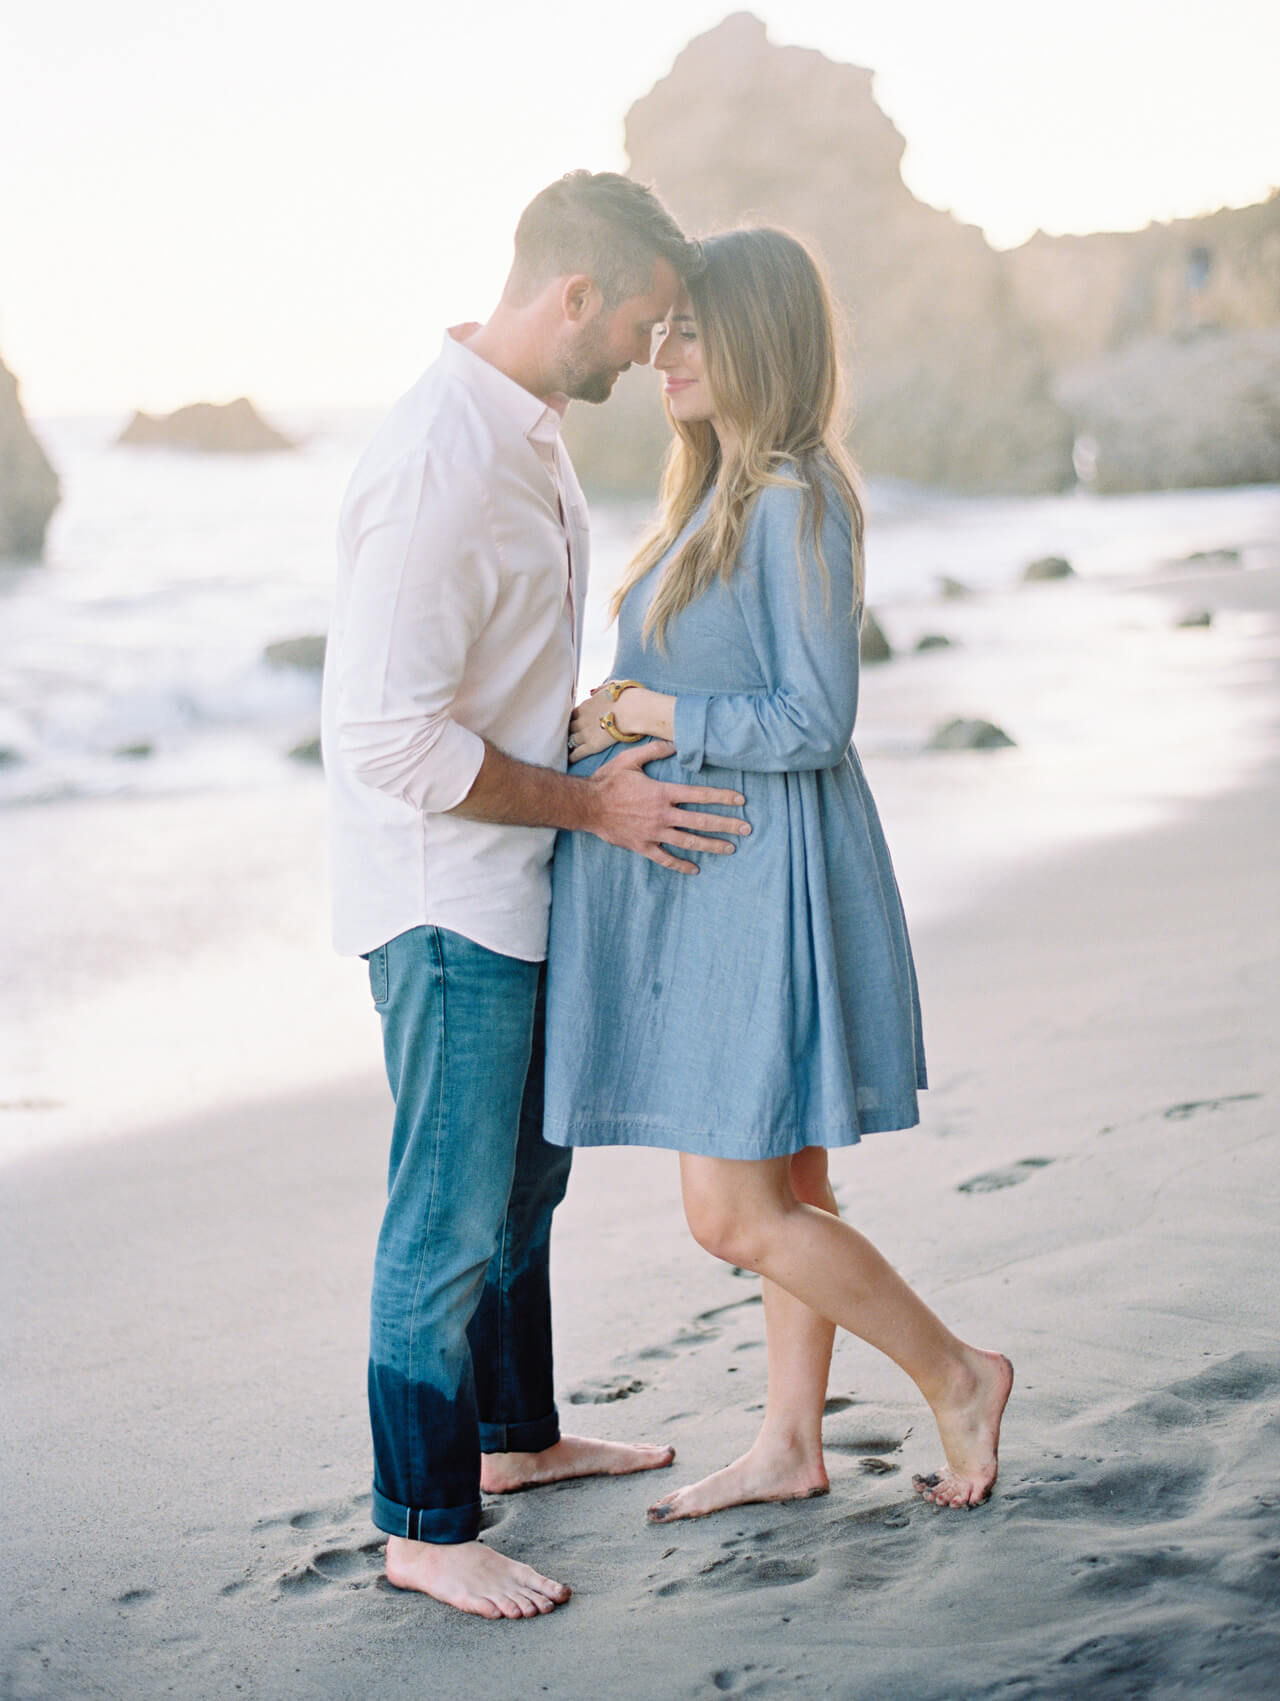 photoshoot inspiration when you're expecting a baby